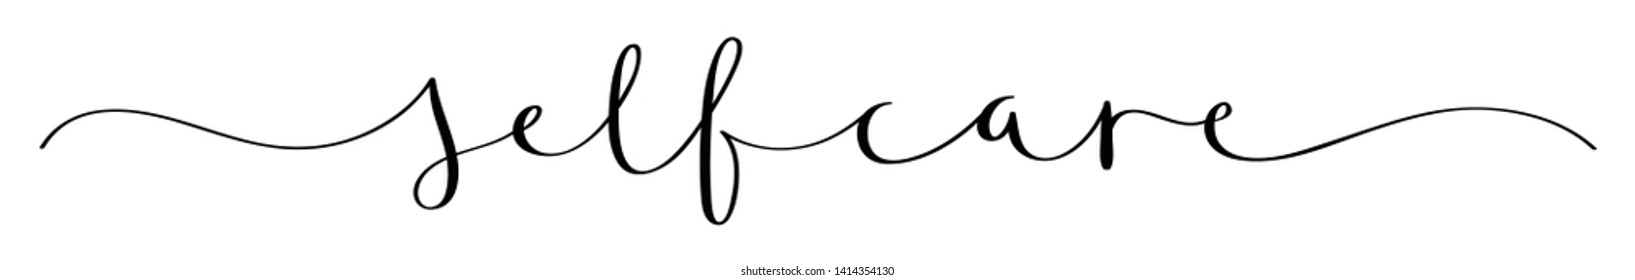 SELF-CARE brush calligraphy banner with swashes